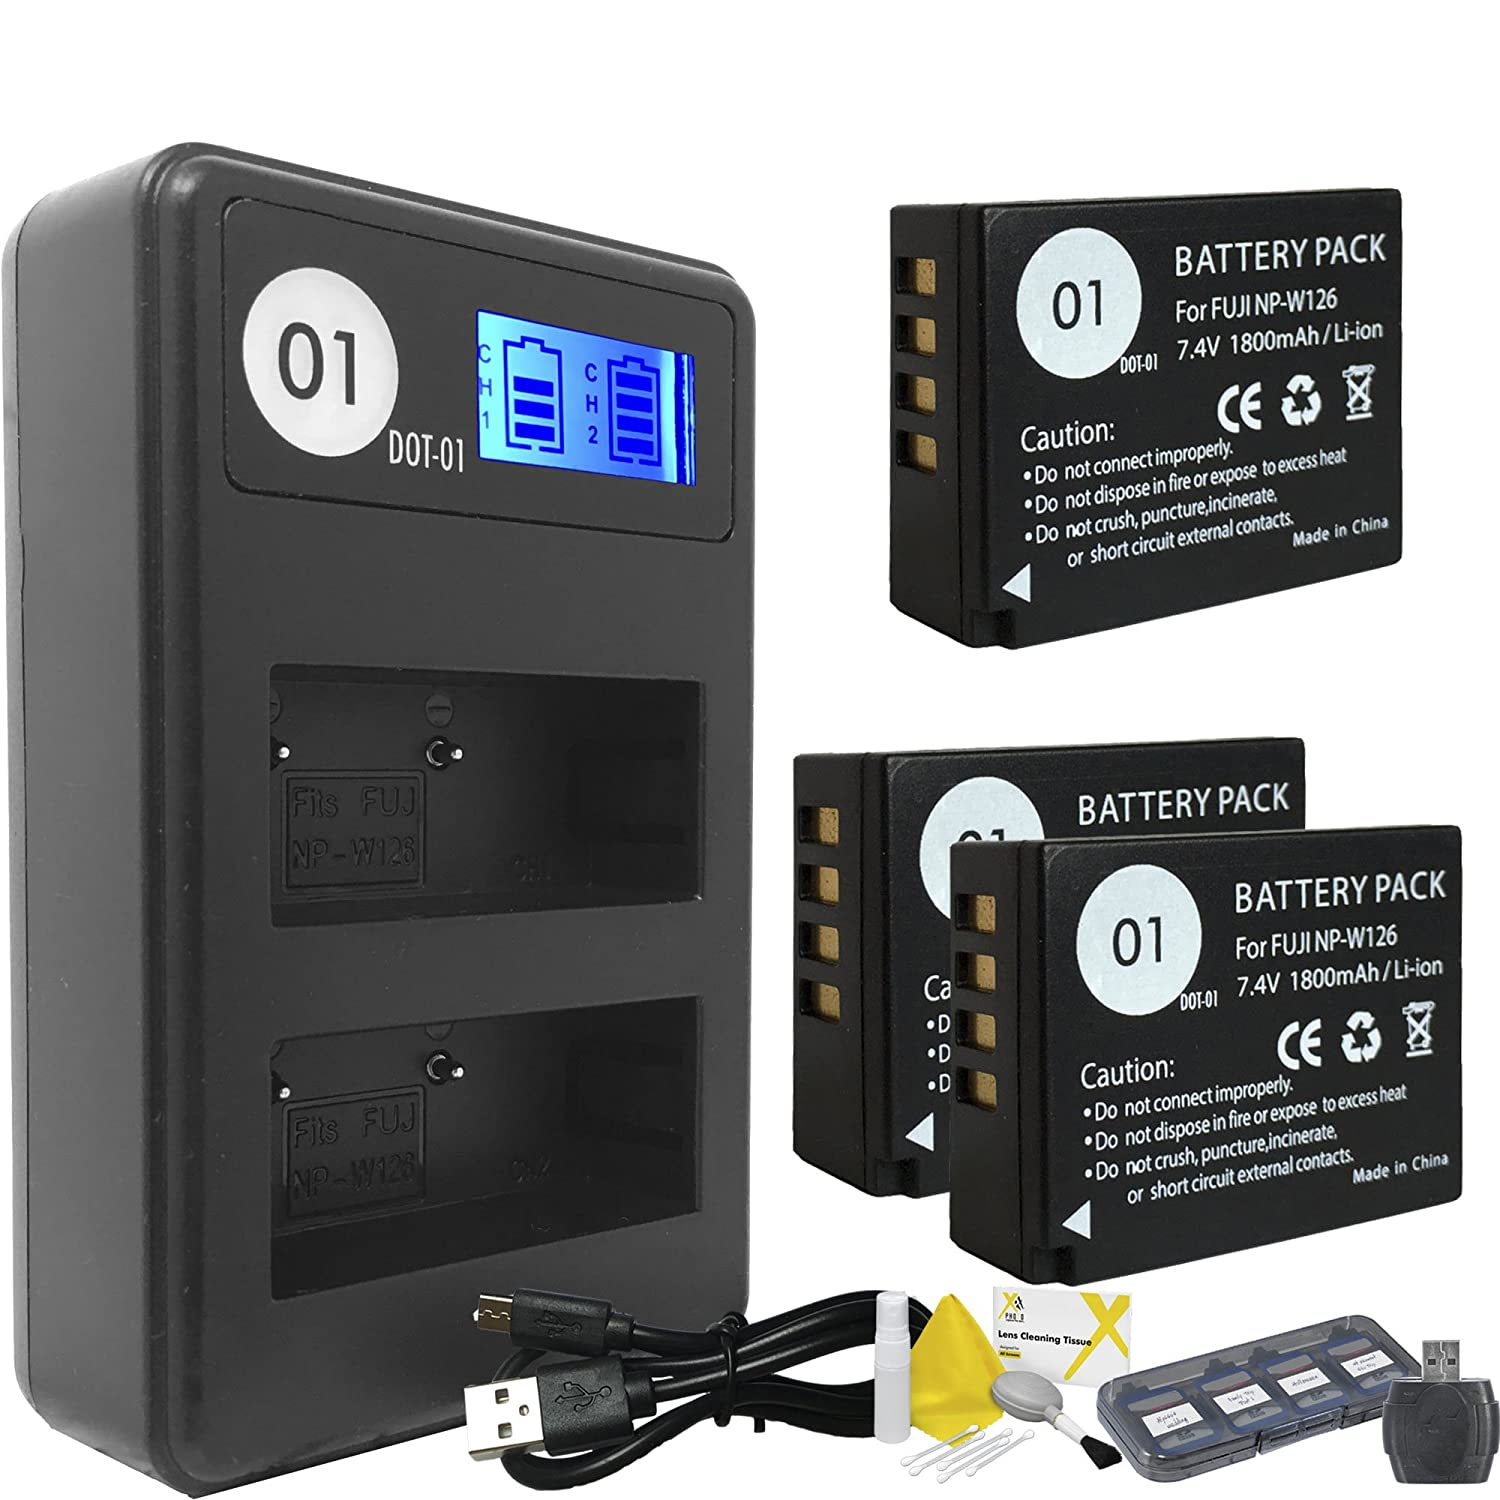 DOT-01 3x Brand Fujifilm X-A5 Batteries for Fujifilm X-A5 Mirrorless and Fujifilm X-A5 Battery and Charger Bundle for Fujifilm NPW126 NP-W126